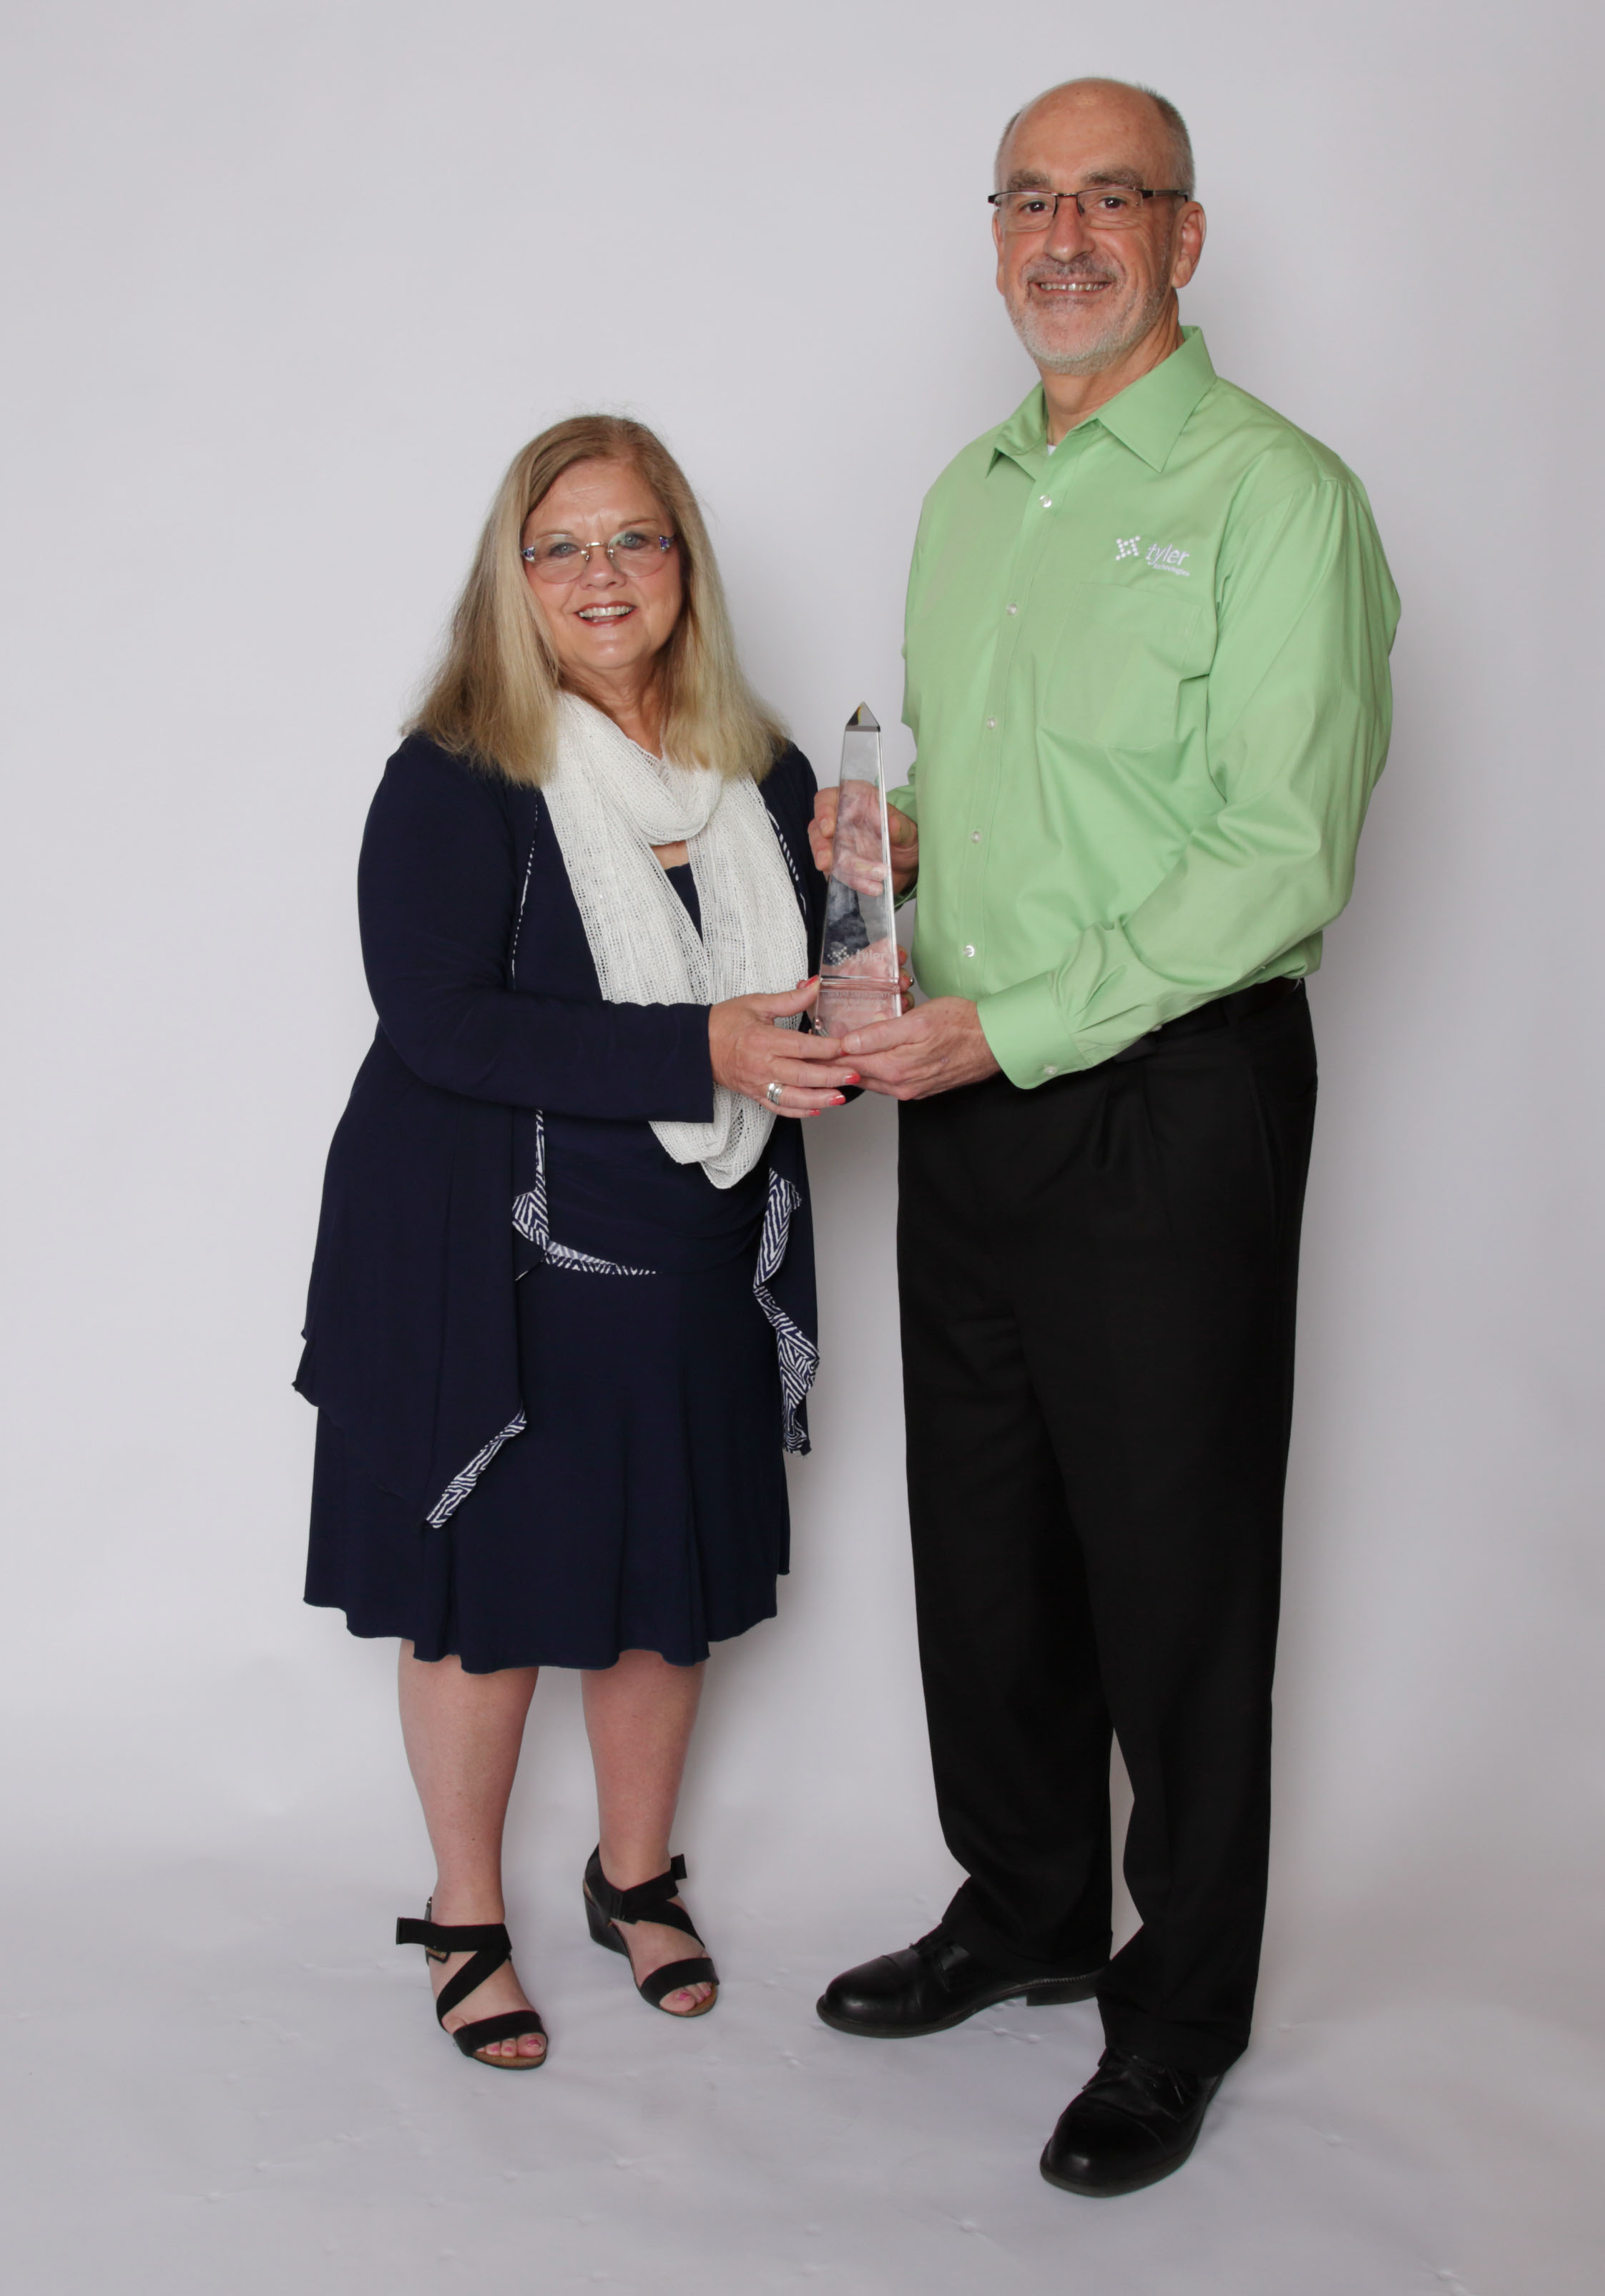 Sue Farni from the Mobile Police Department, Alabama, accepts the award from Tyler's Sandy Peters. (Photo: Business Wire)